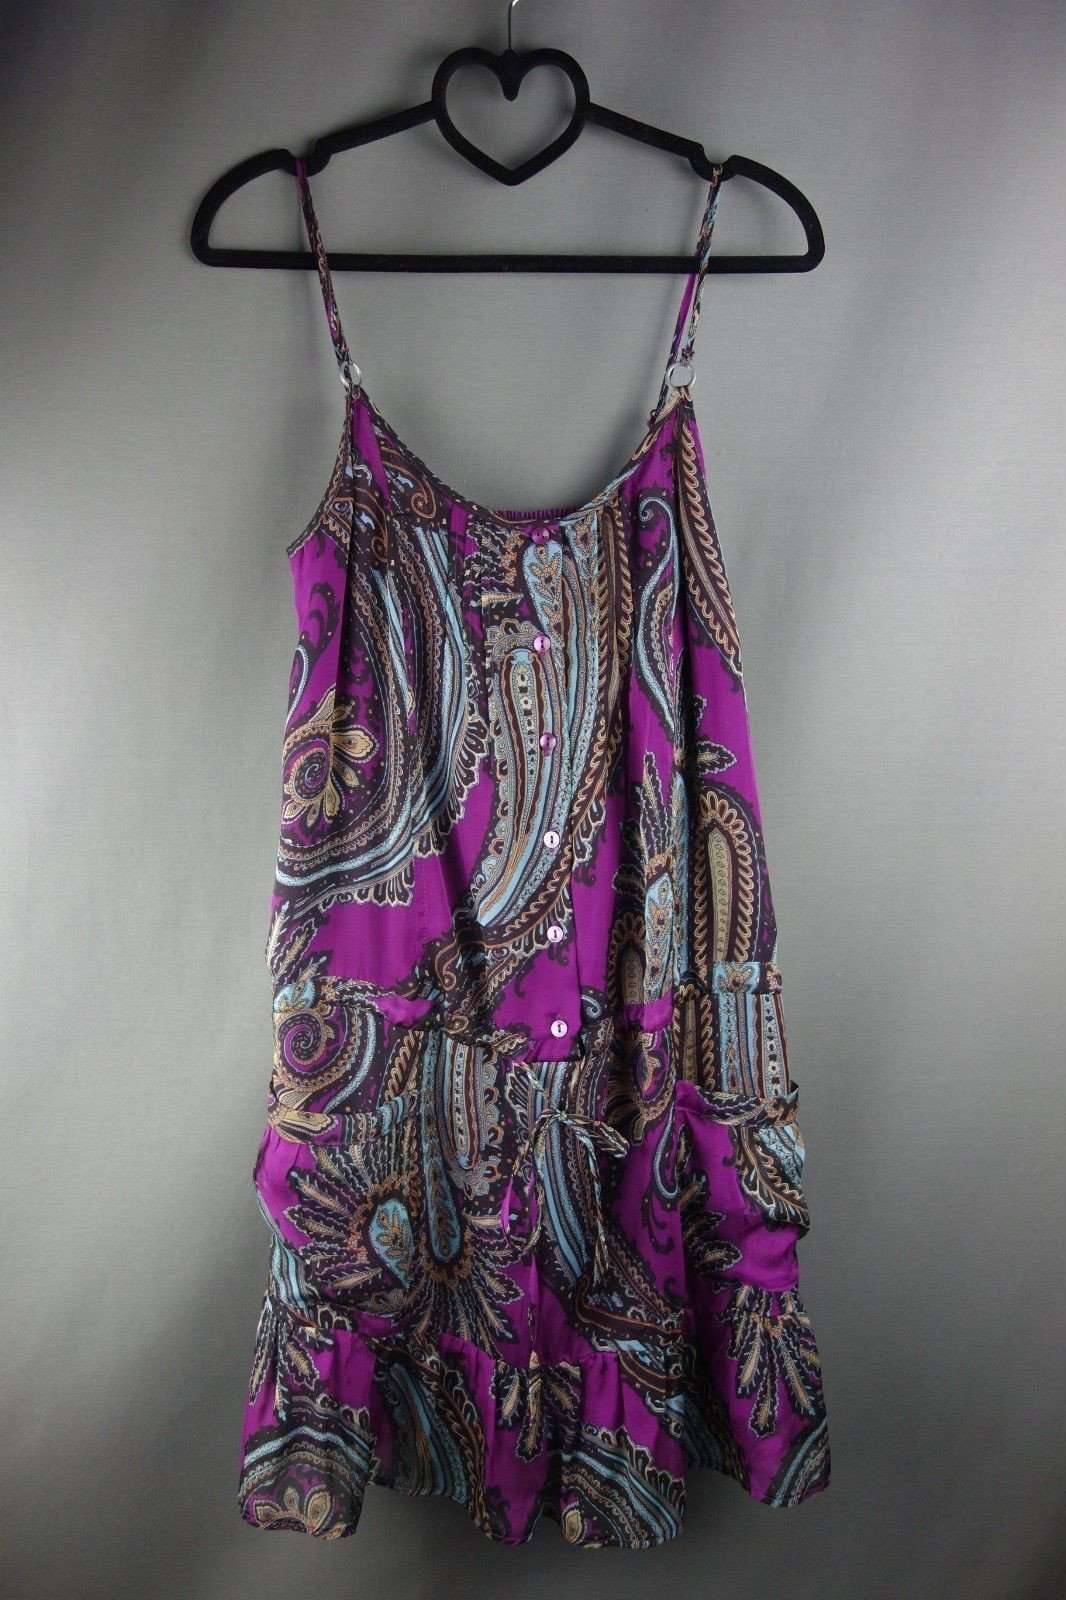 4d7c7934662 Purple Mixed Pattern Strappy Tunic Top Sleeveless by Marks & Spencer Size 8